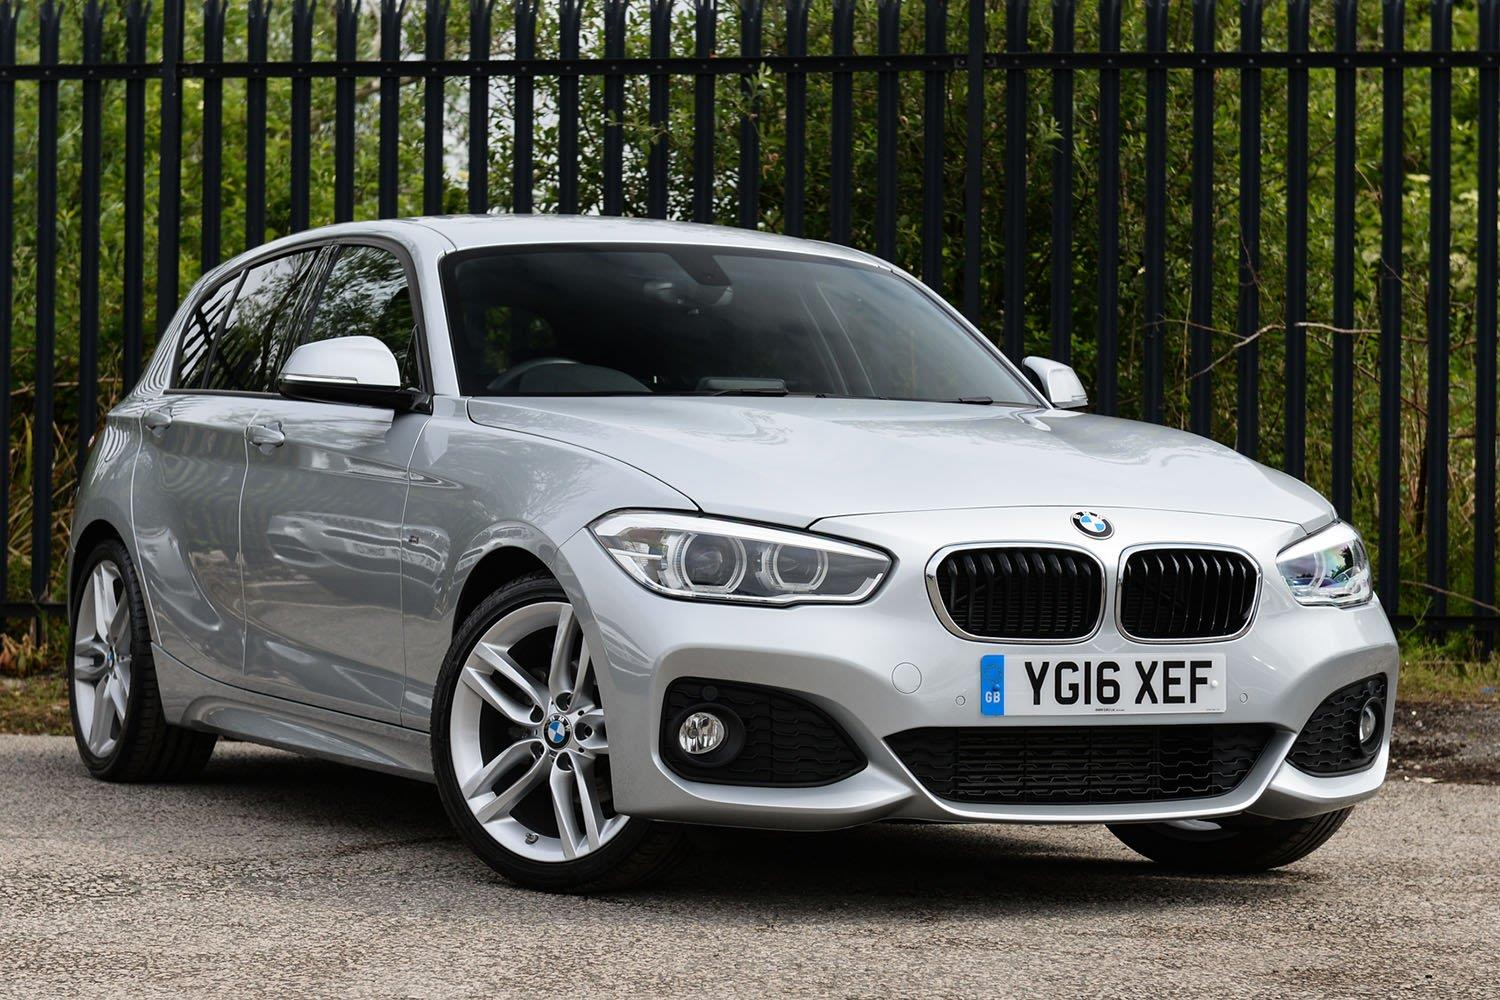 BMW 1 Series 5-door Sports Hatch YG16XEF - Image 3